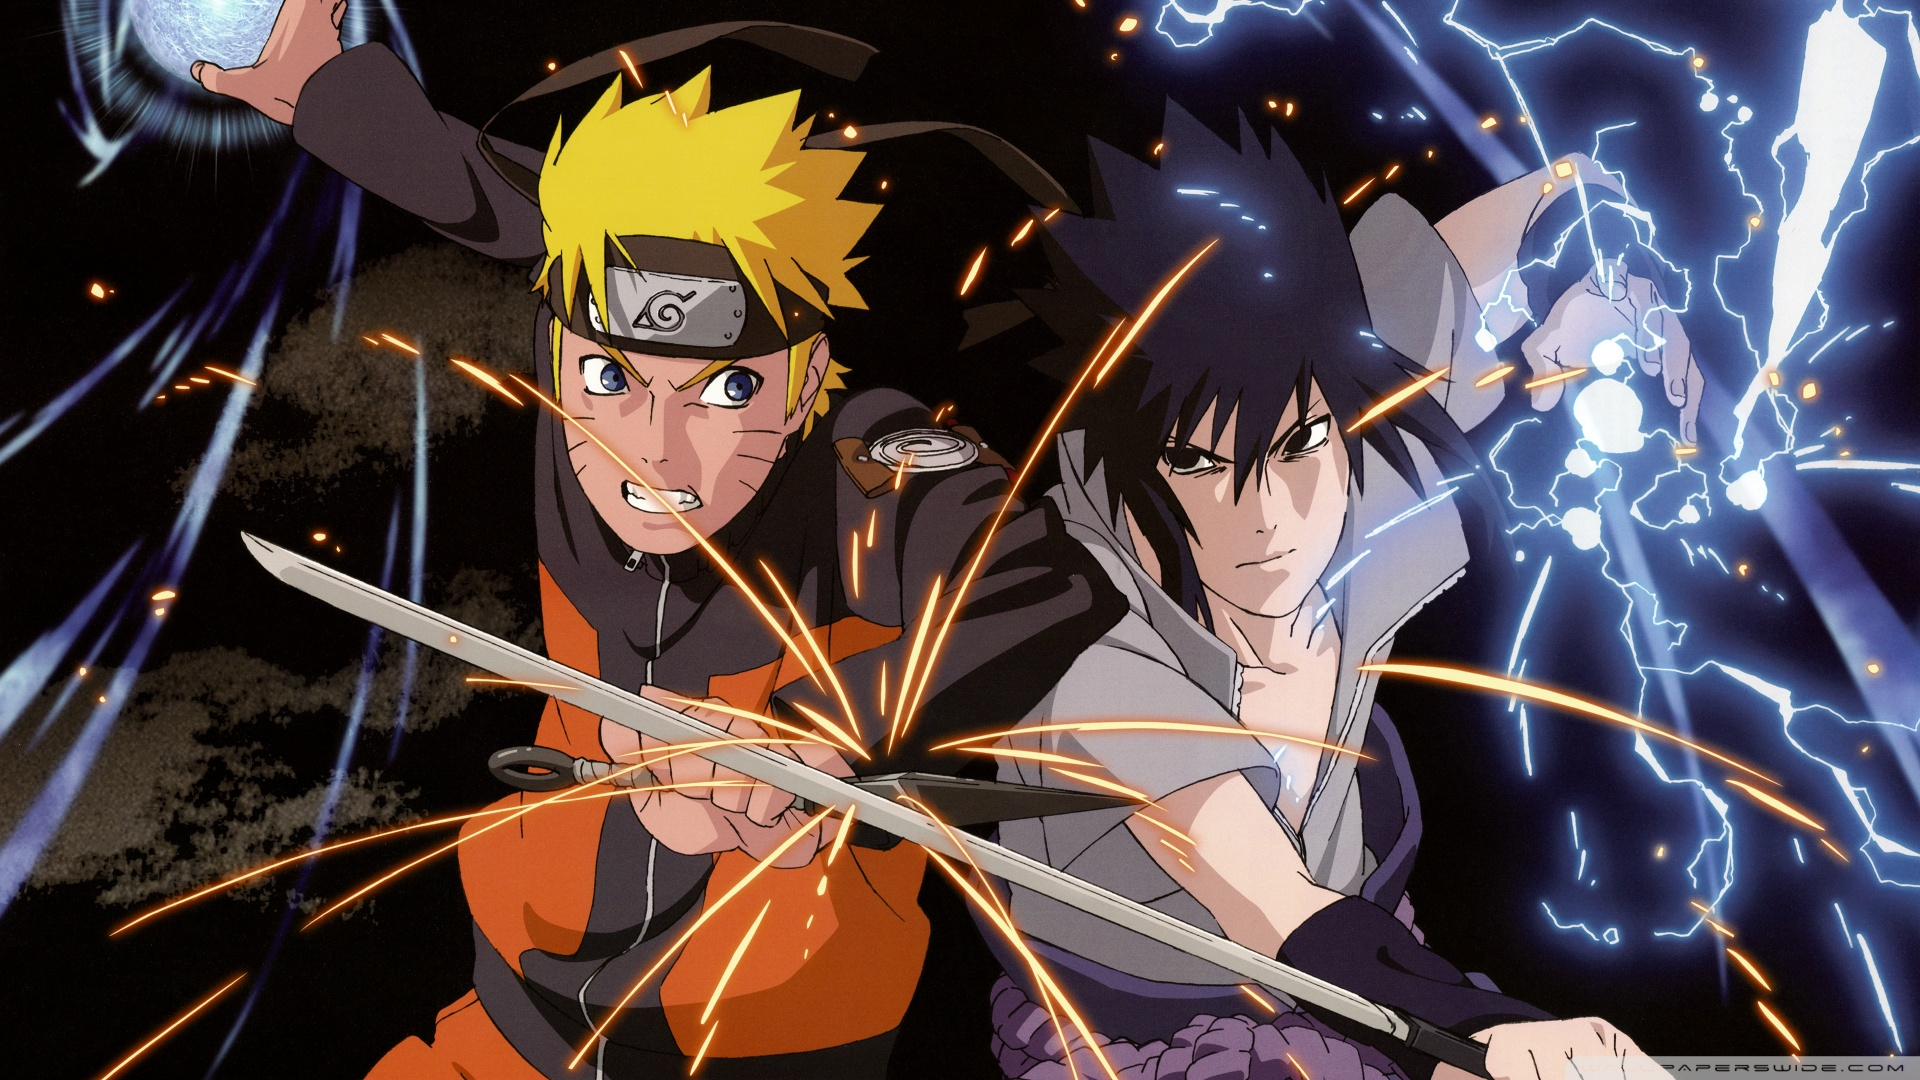 naruto vs. sasuke ❤ uhd desktop wallpaper for ultra hd 4k 8k